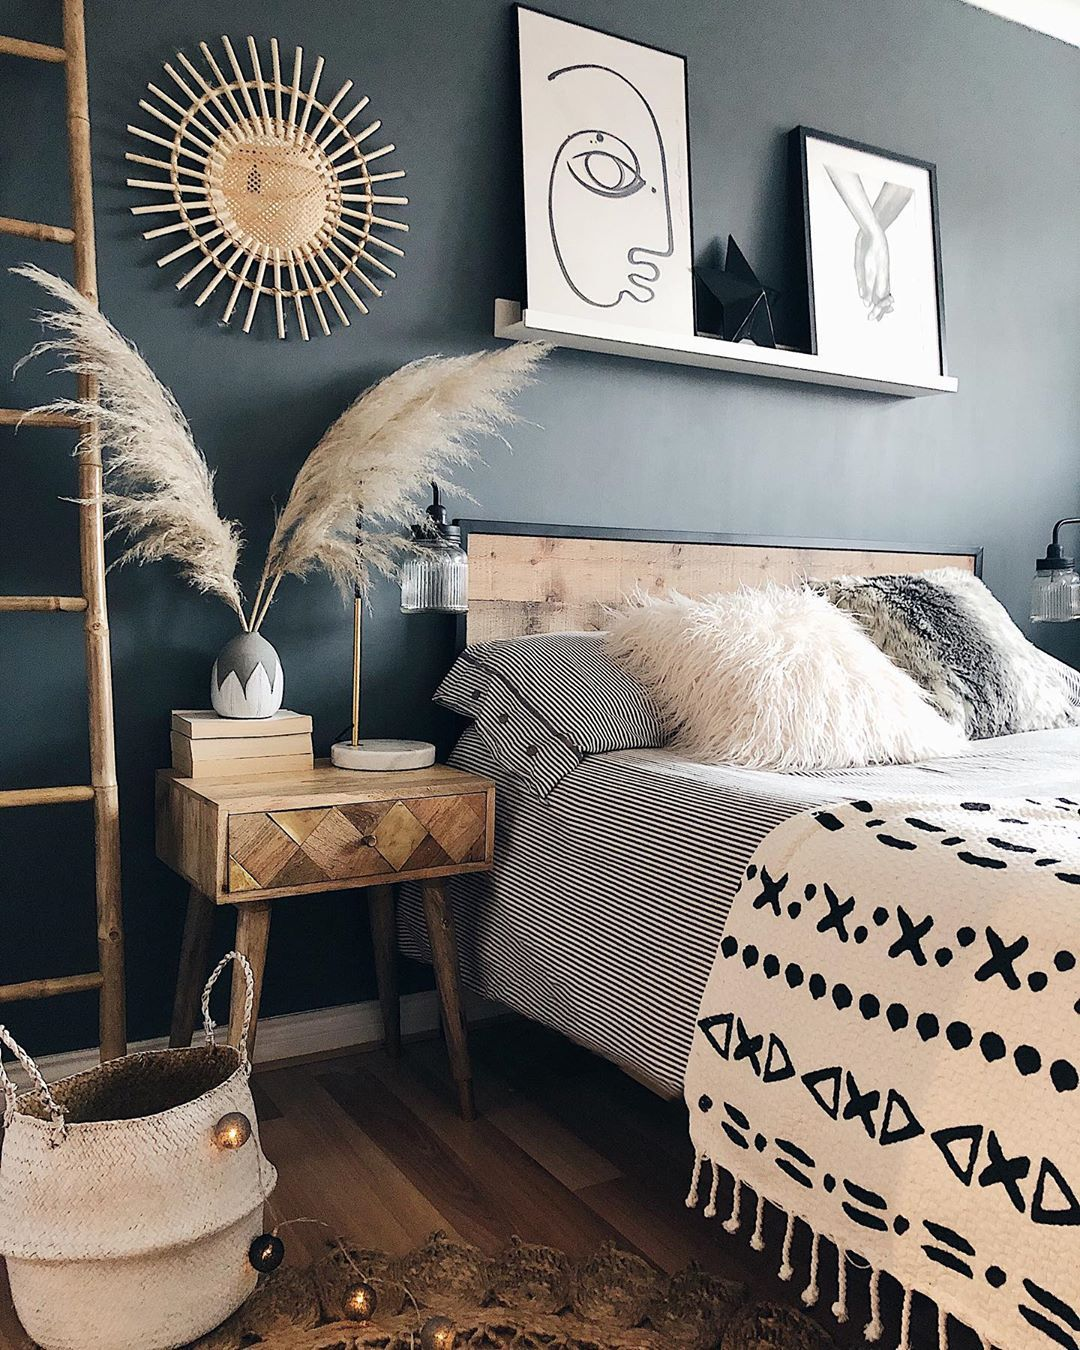 Mel Interior Inspiration On Instagram Good Morning And Happy Wednesday Staring At My Phone Wi In 2020 Bedroom Inspiration Boho Boho Bedroom Gray Bedroom Walls